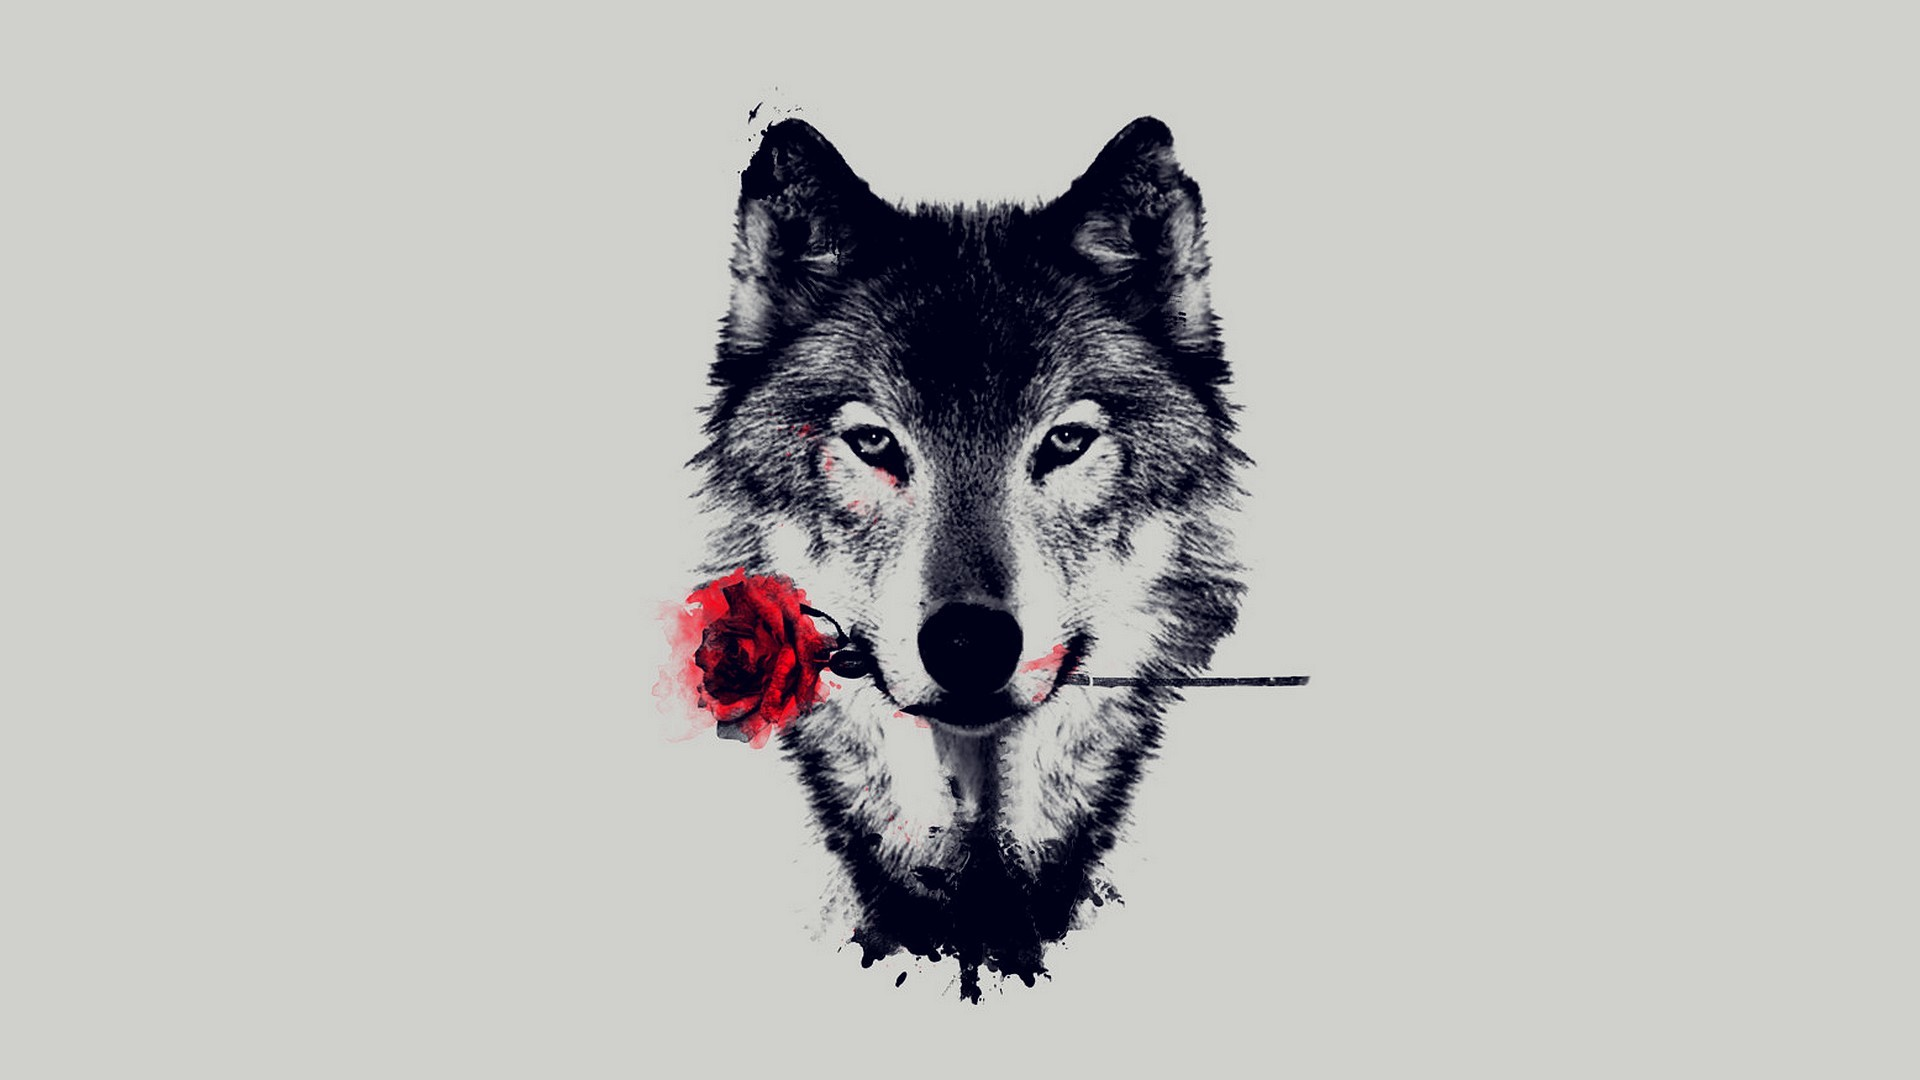 1920x1080 Wolf HD Wallpapers Backgrounds Wallpaper | HD Wallpapers | Pinterest | Wolf  wallpaper, Wallpaper and Wallpapers android